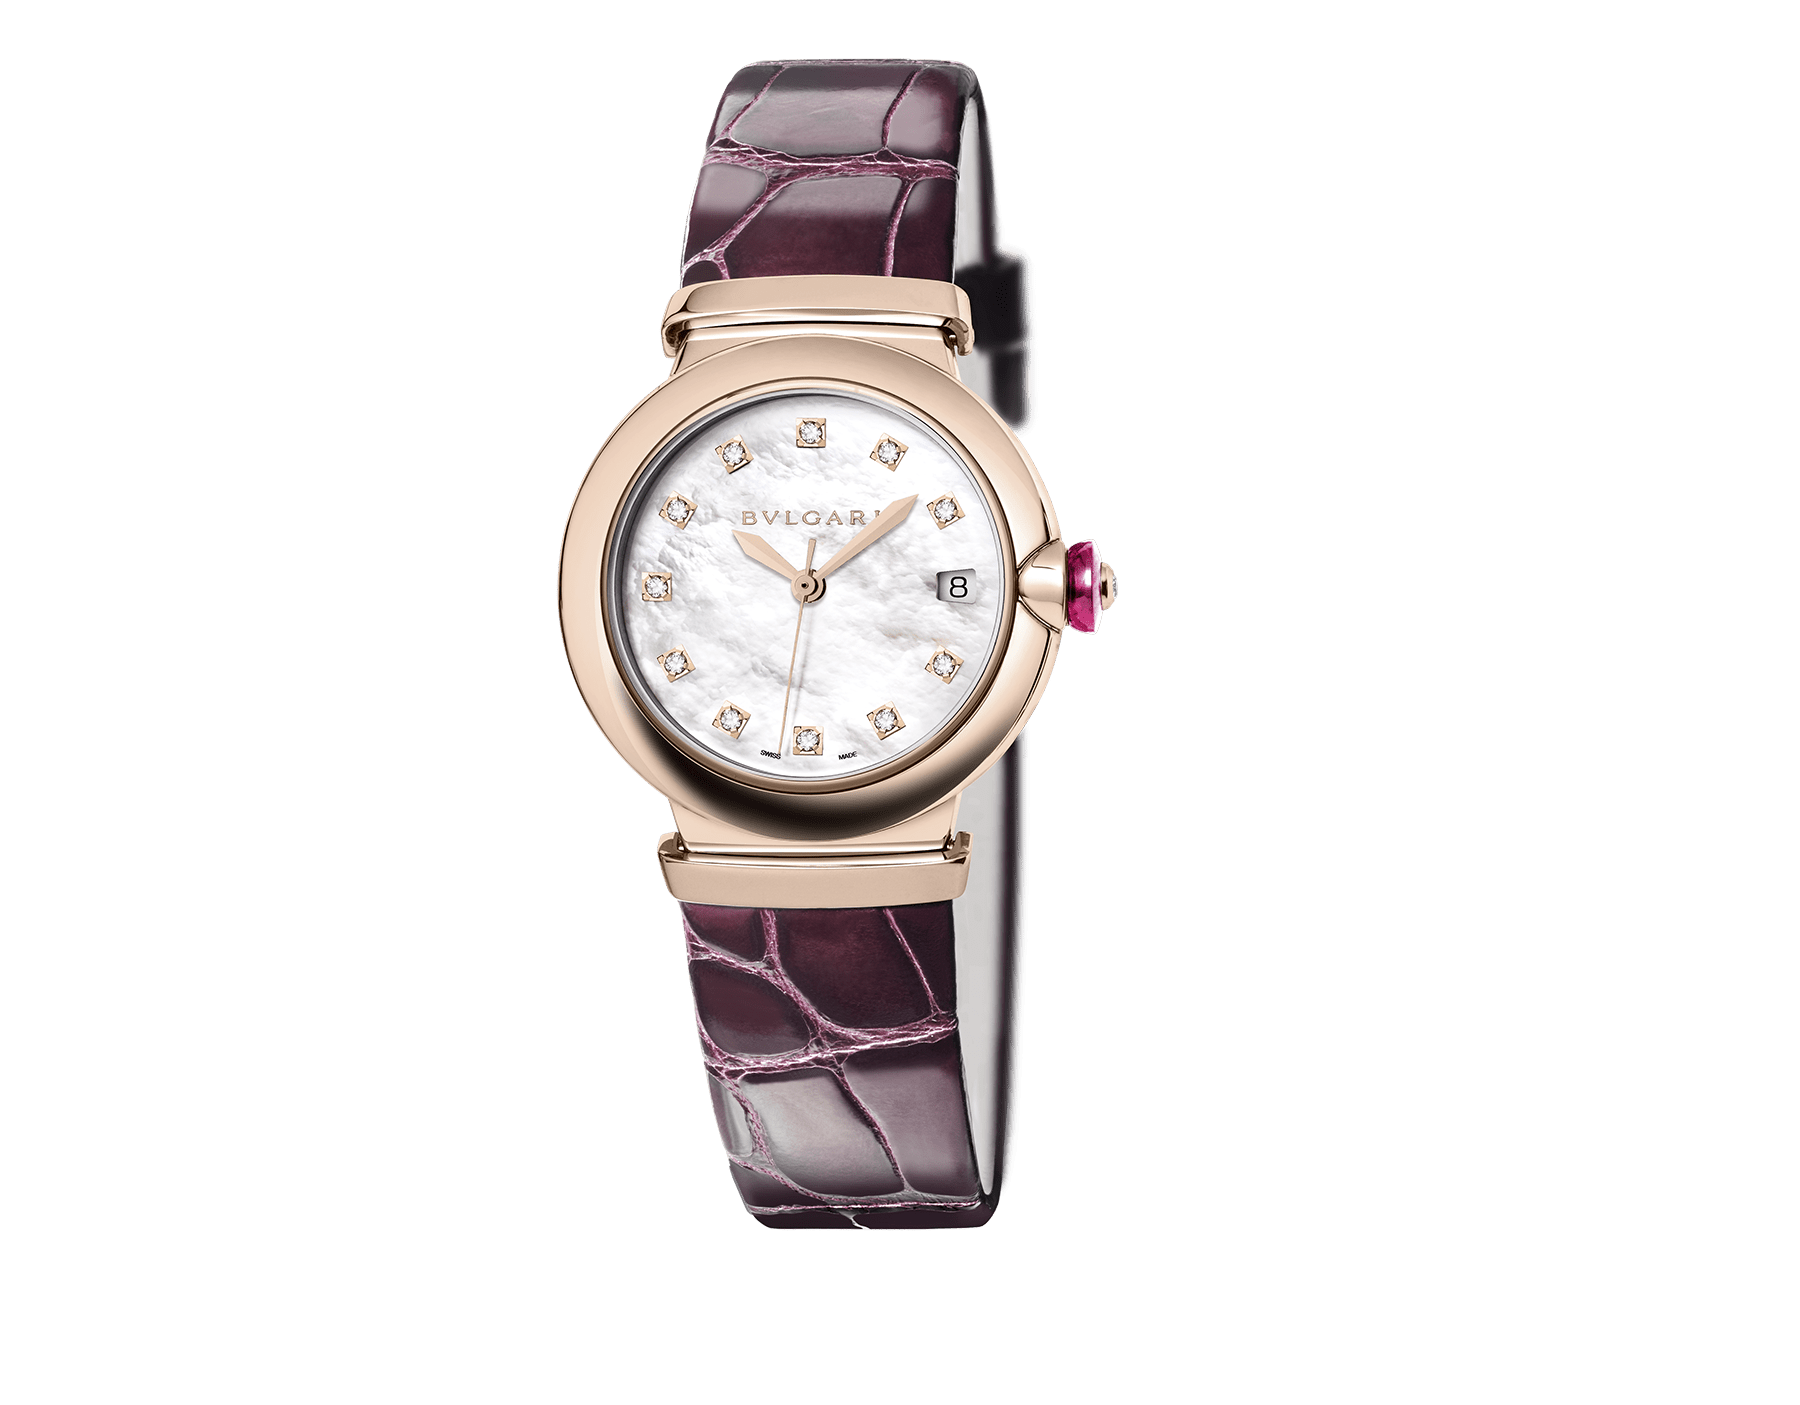 LVCEA watch with 18 kt rose gold case, white mother-of-pearl dial, diamond indexes and purple alligator bracelet. 102573 image 1